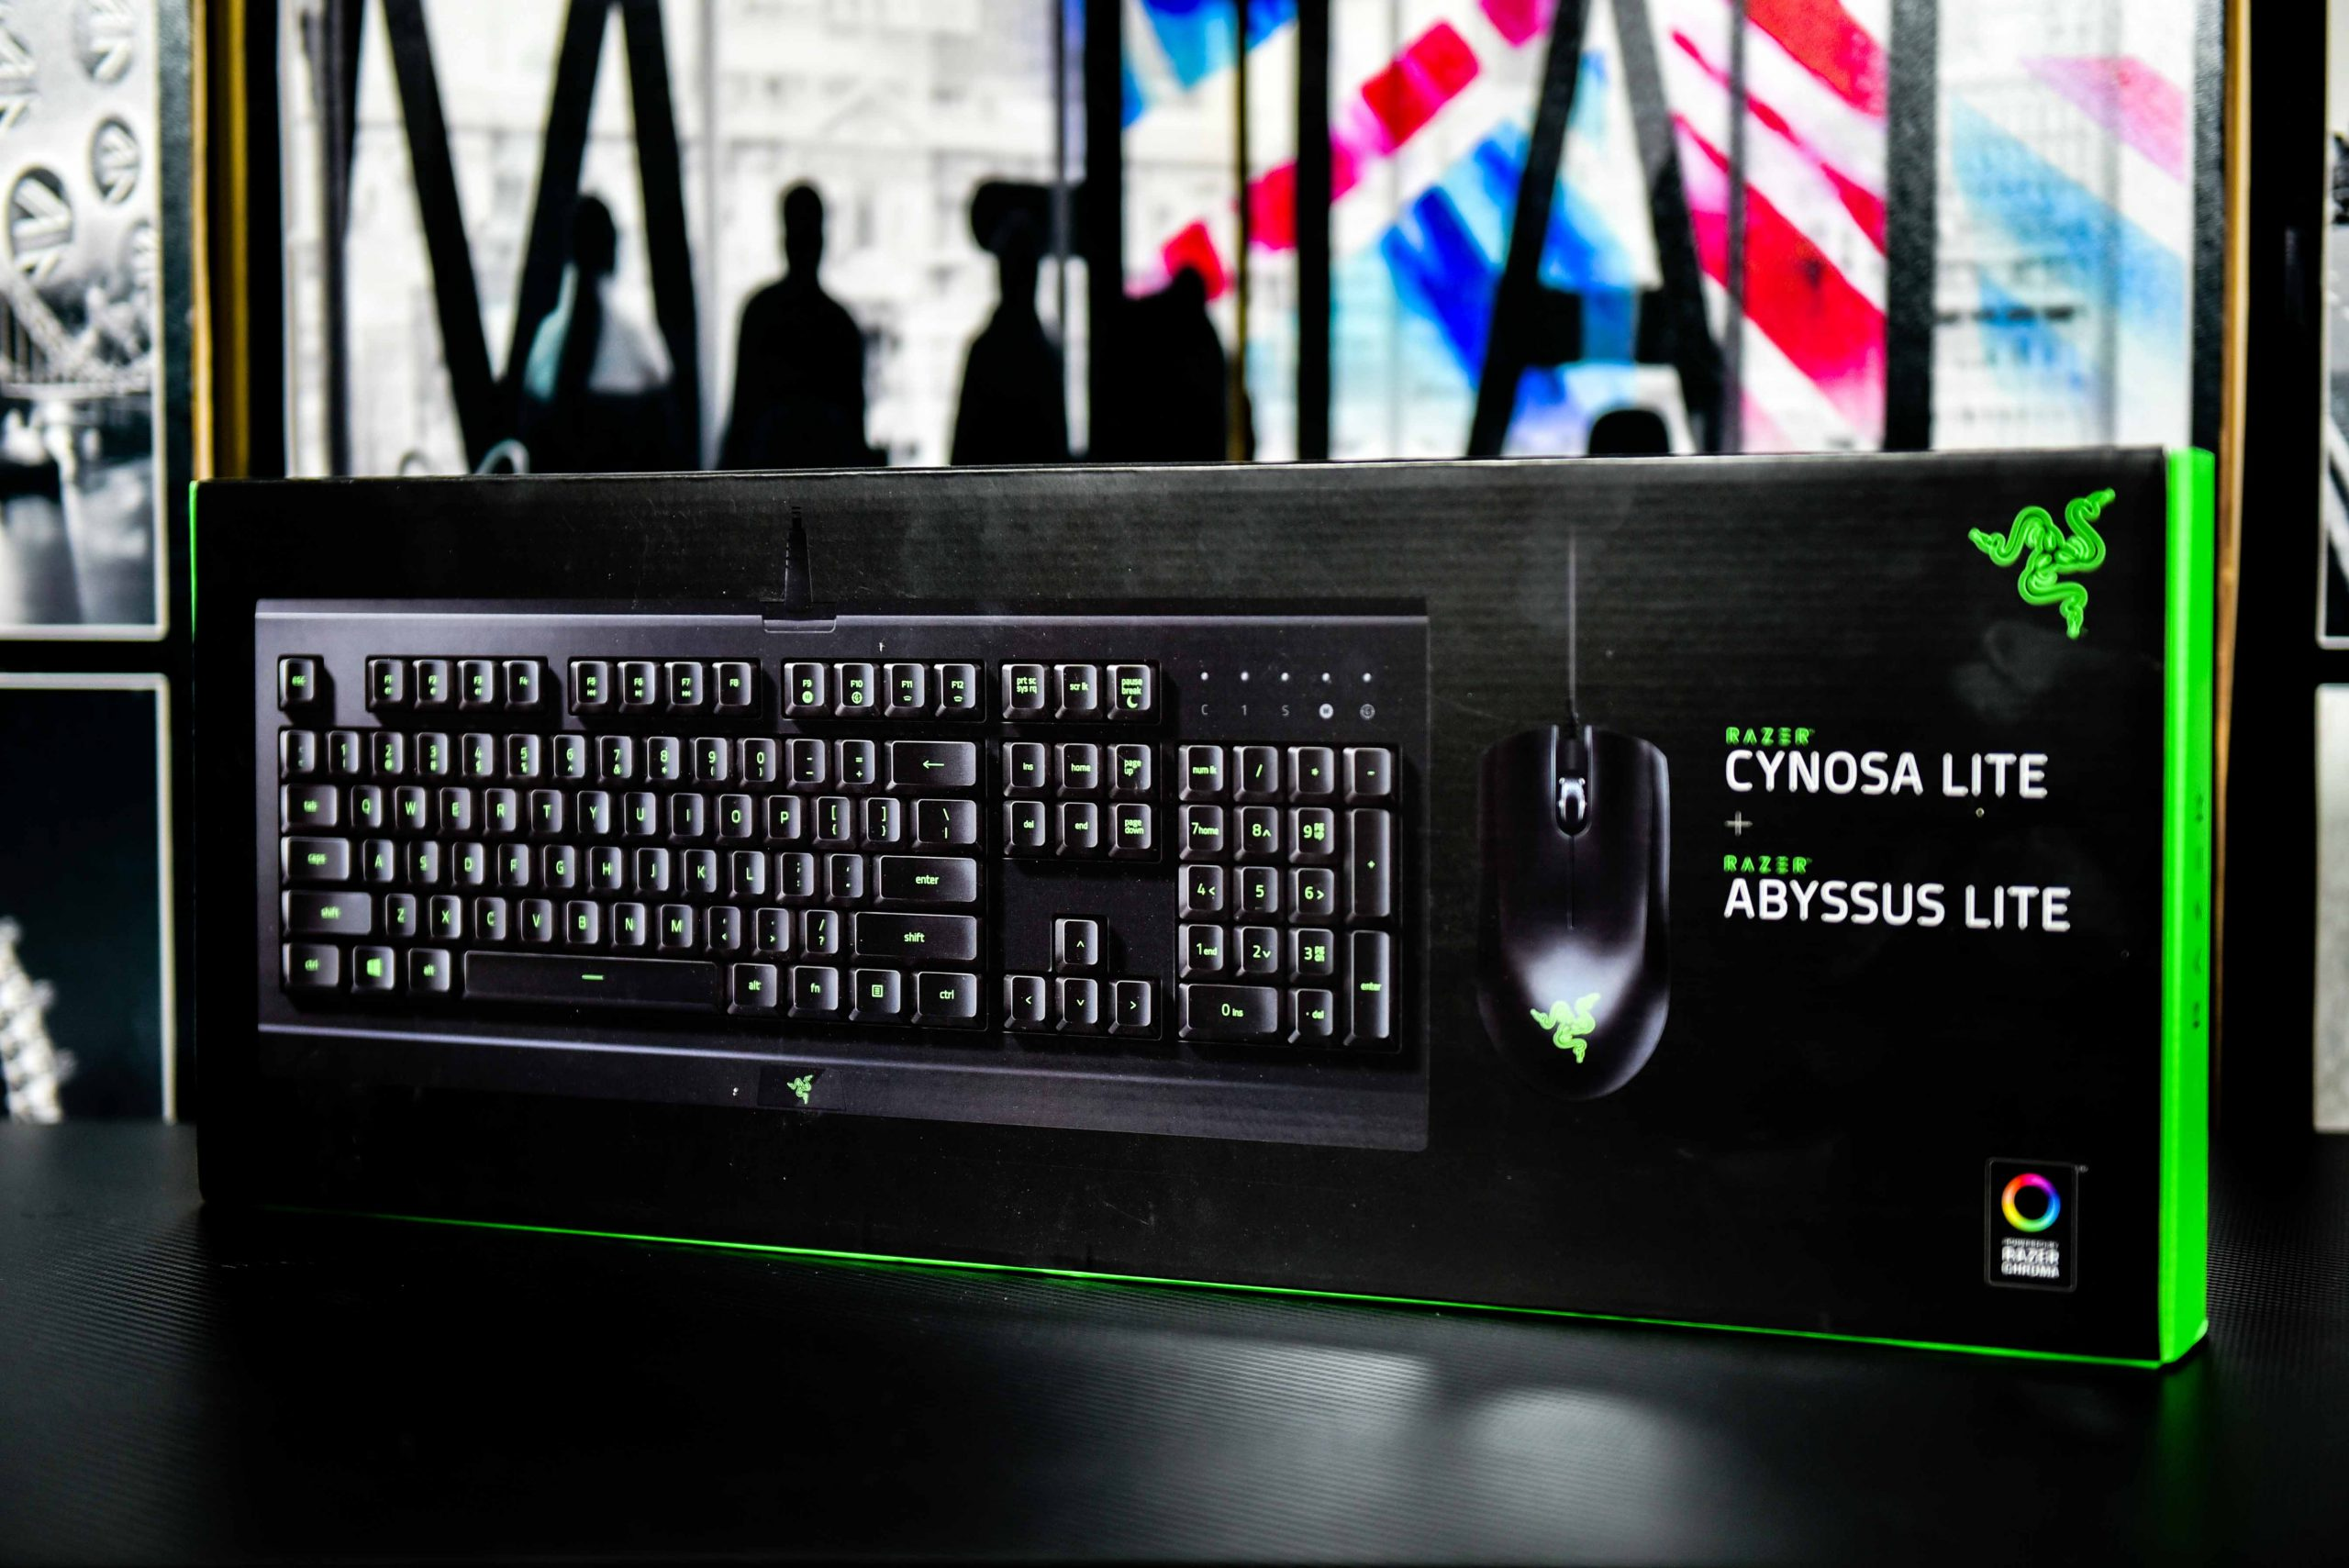 Razer Cynosa Lite Gaming Keyboard & Abysses Lite Gaming Mouse in Qatar